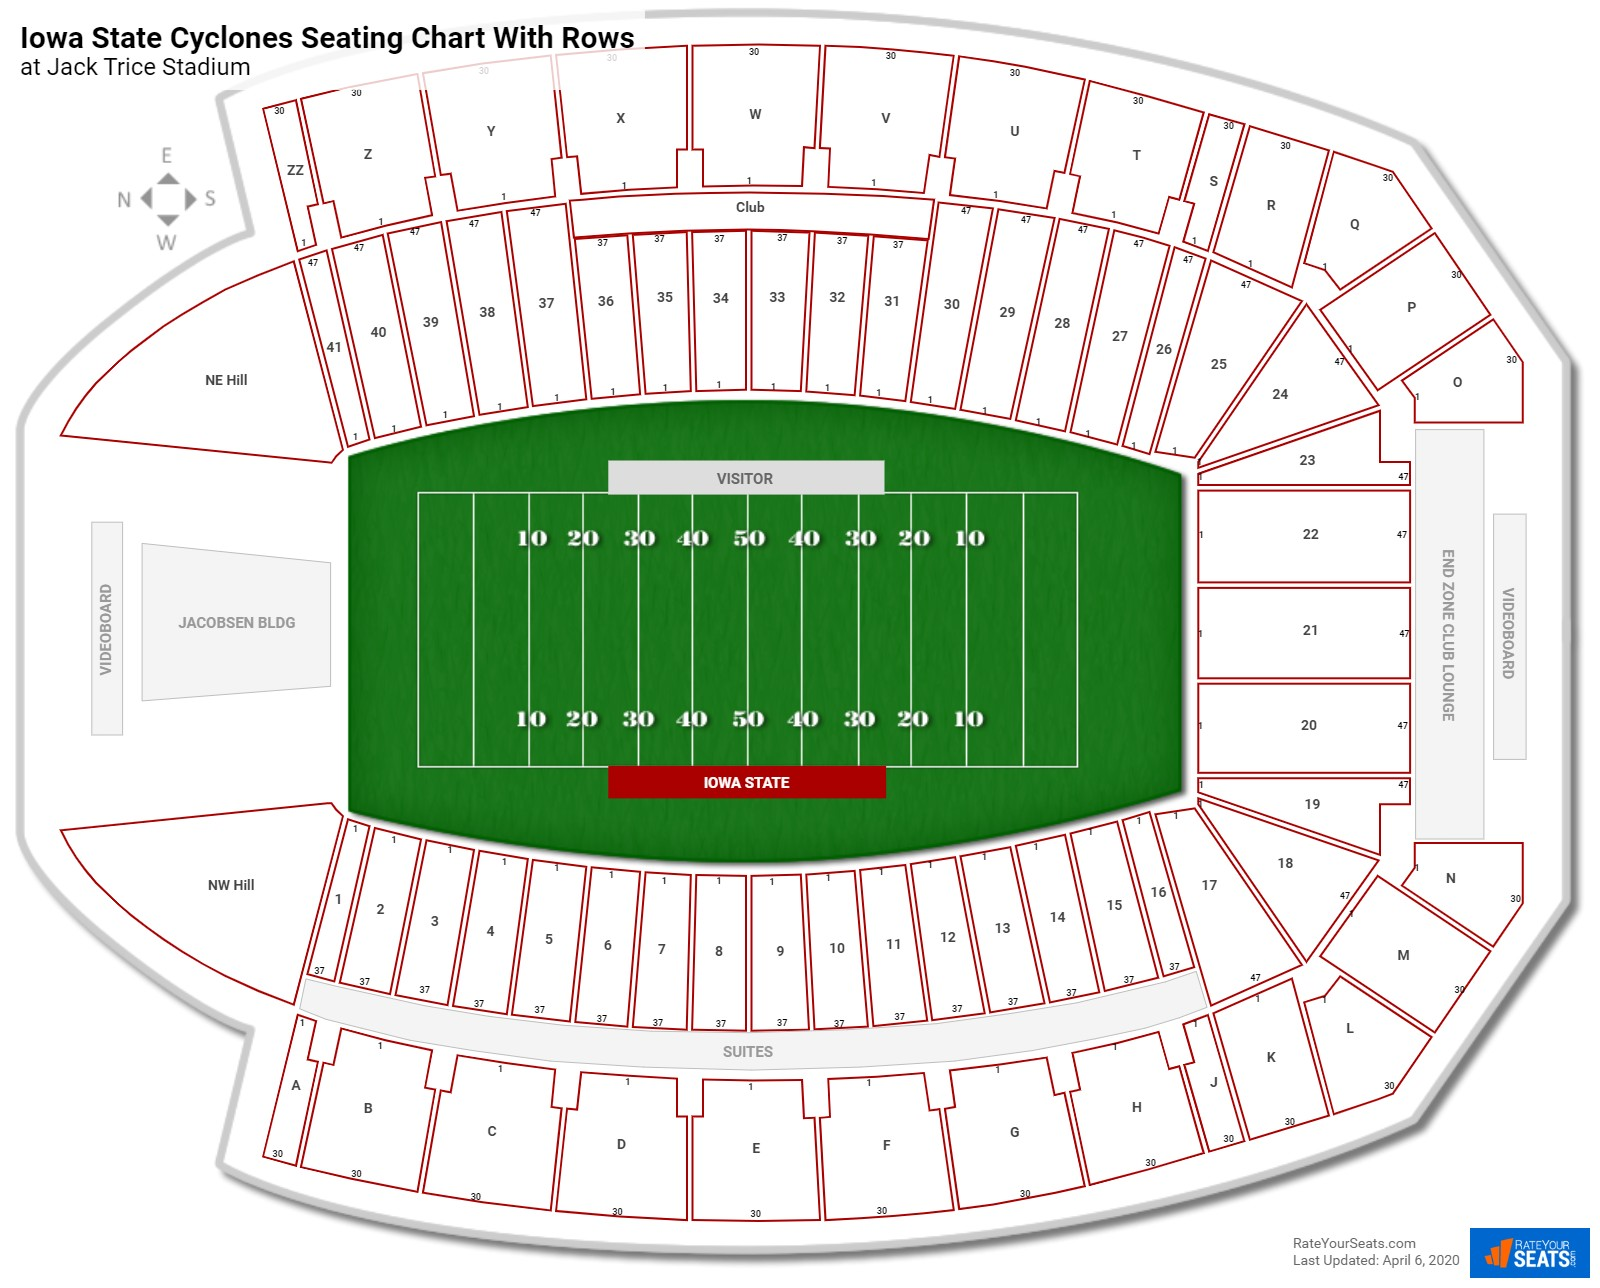 Jack Trice Stadium seating chart with rows